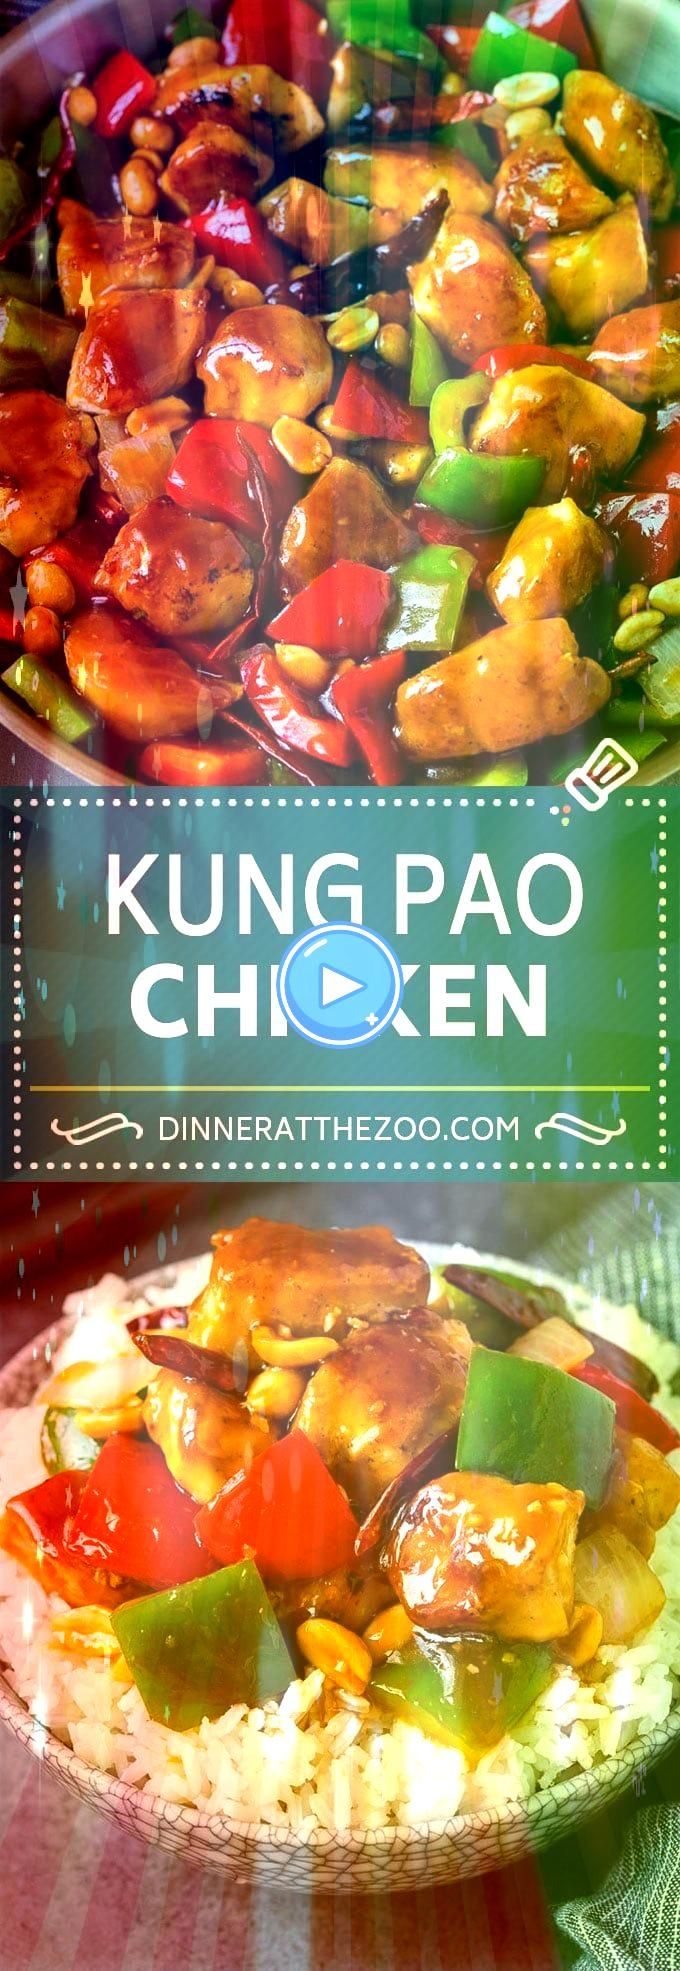 Pao Chicken Recipe  Chicken Stir FryKung Pao Chicken Recipe  Chicken Stir Fry This valuable timesaver will allow you to make large volumes of tasty appetizers perfect for...